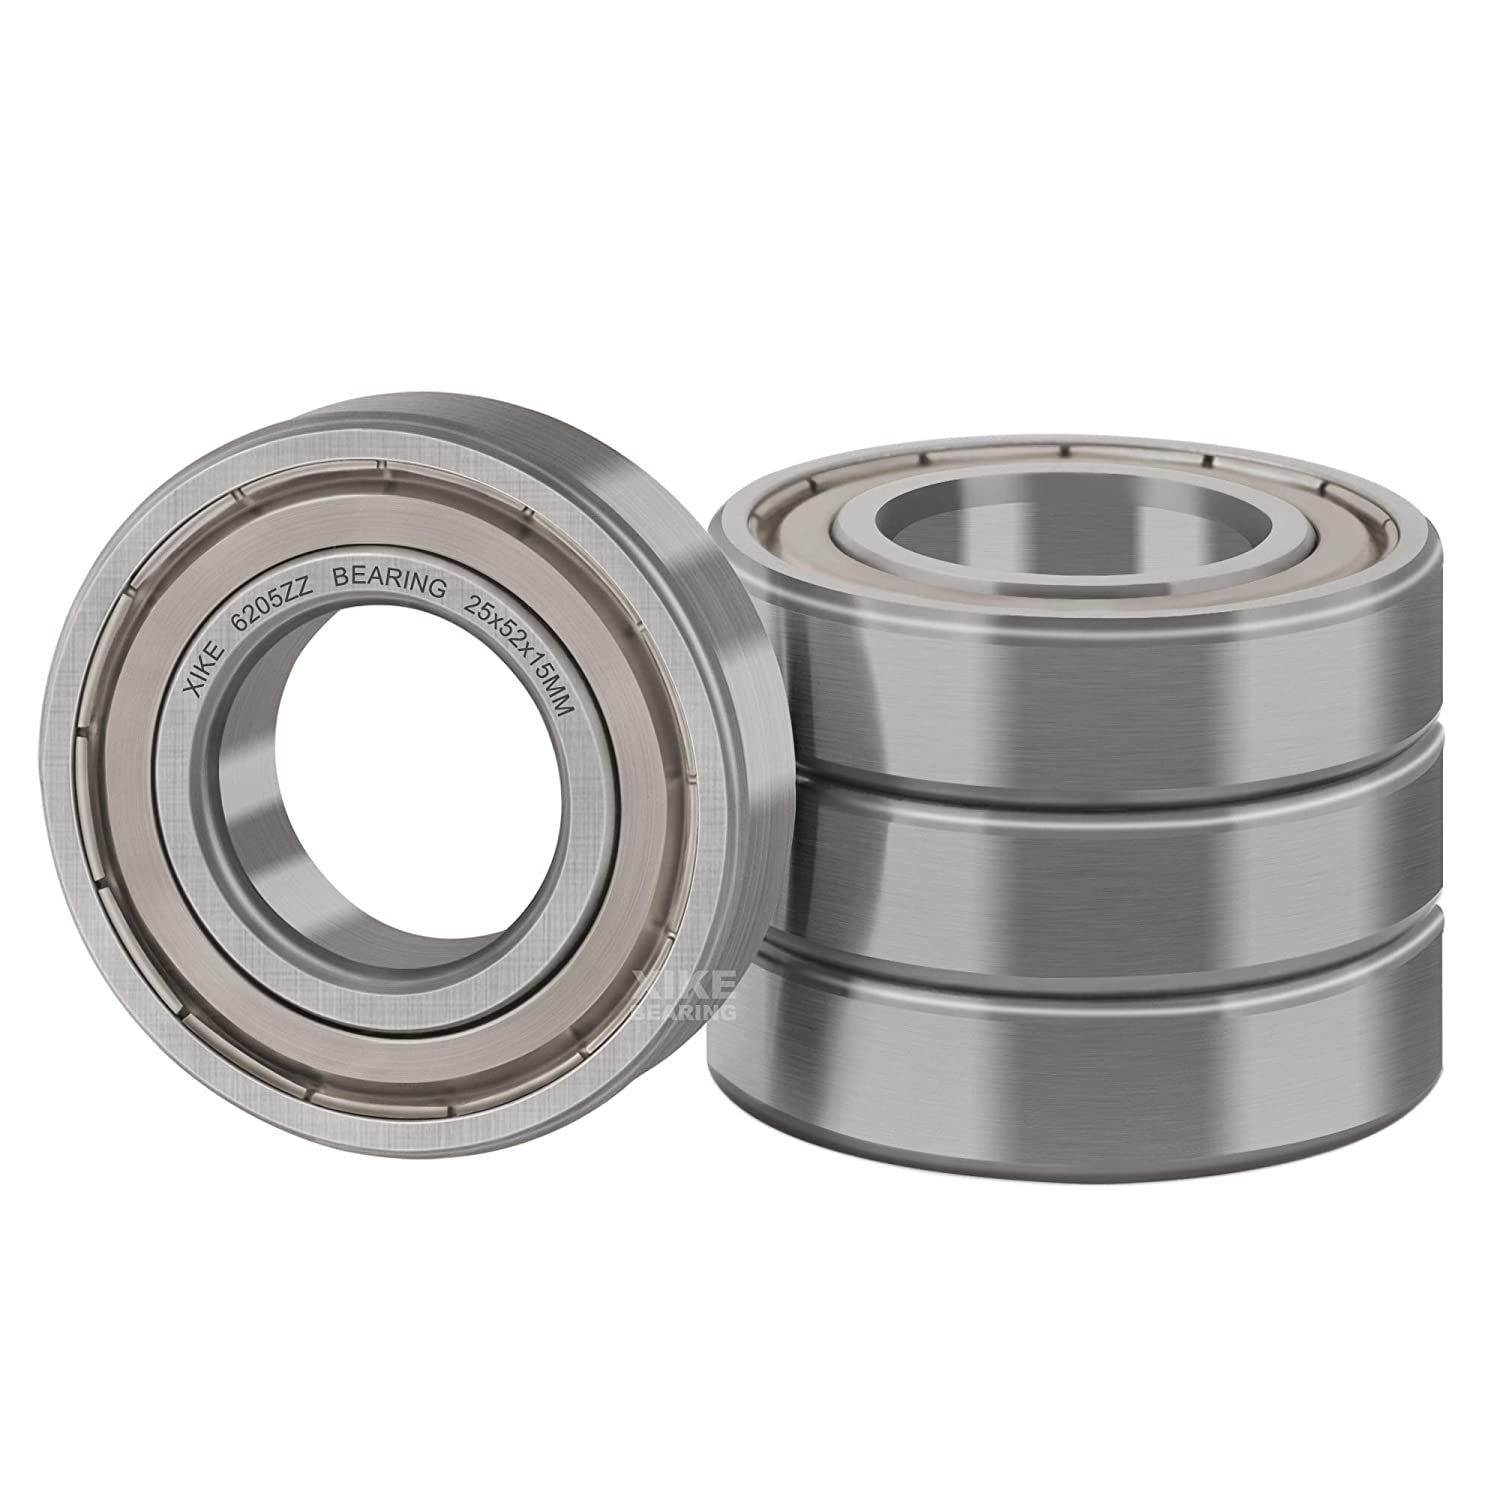 XiKe 4 Pcs 6205ZZ Double 25x52x15mm Daily bargain sale Seal Bearings Year-end annual account Metal Pre-Lub